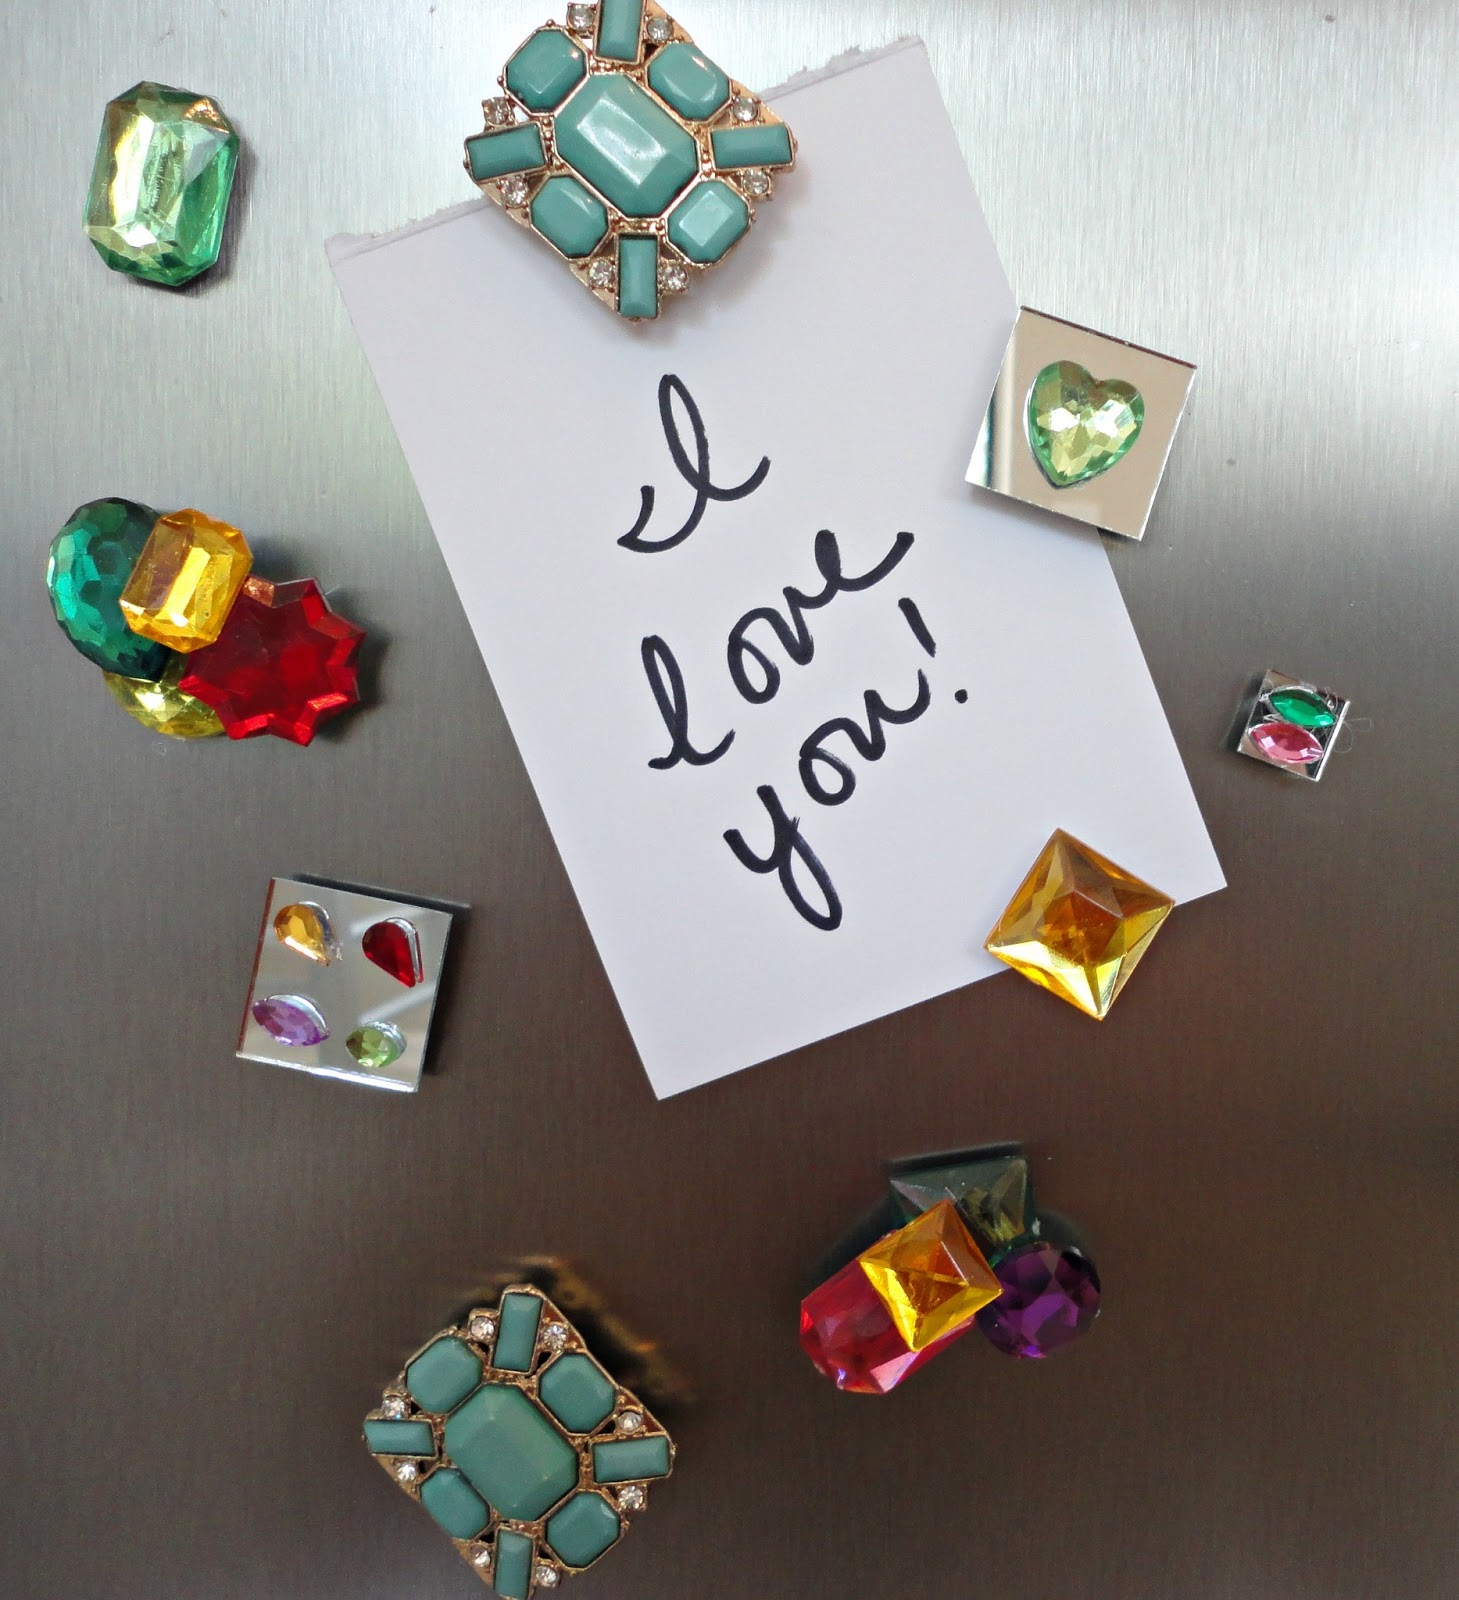 DIY gemstone magnets